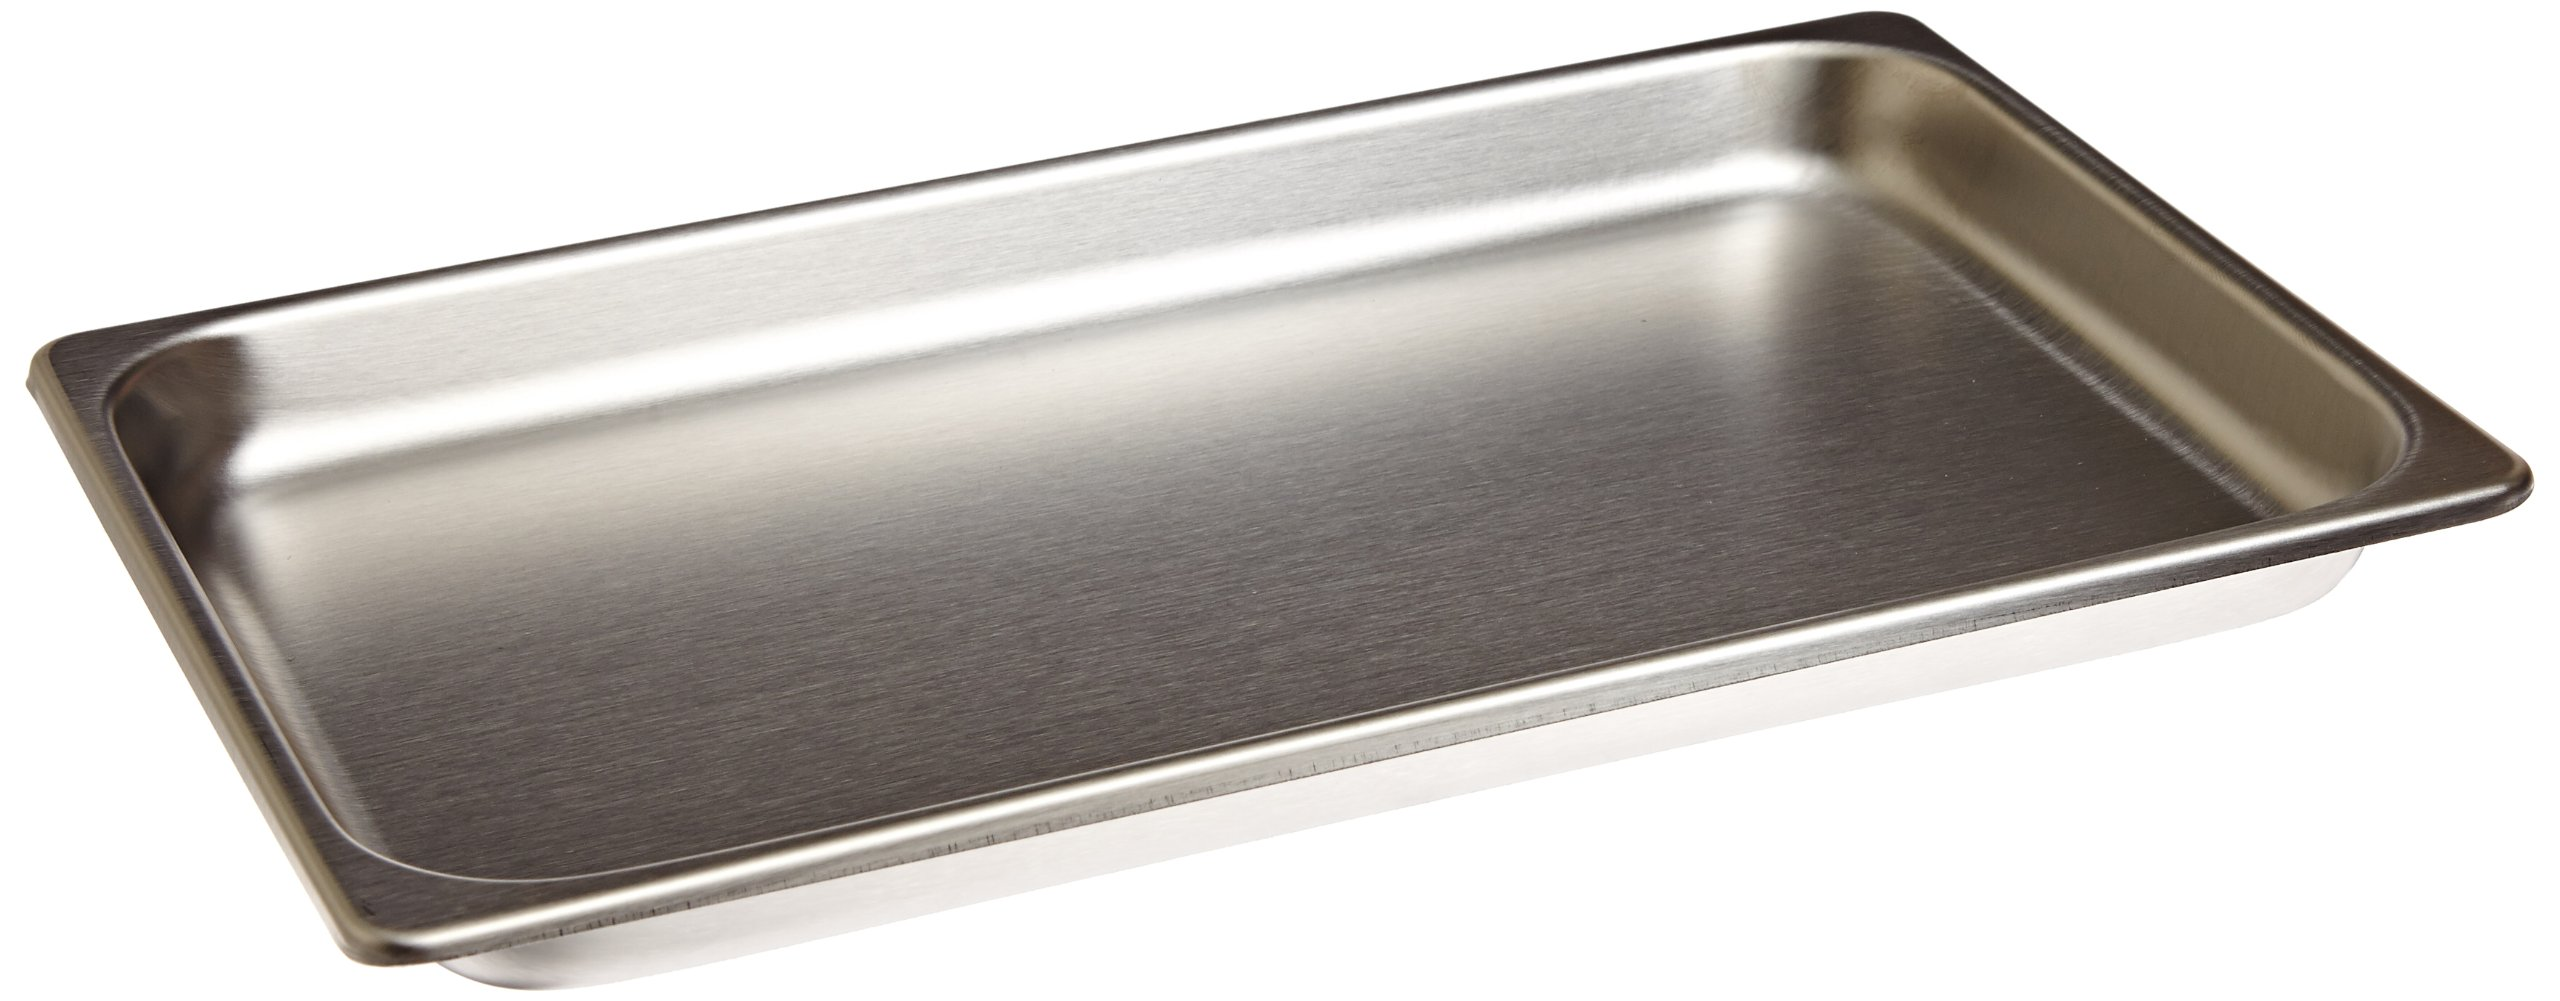 f polar ware company instrument tray stainless steel -